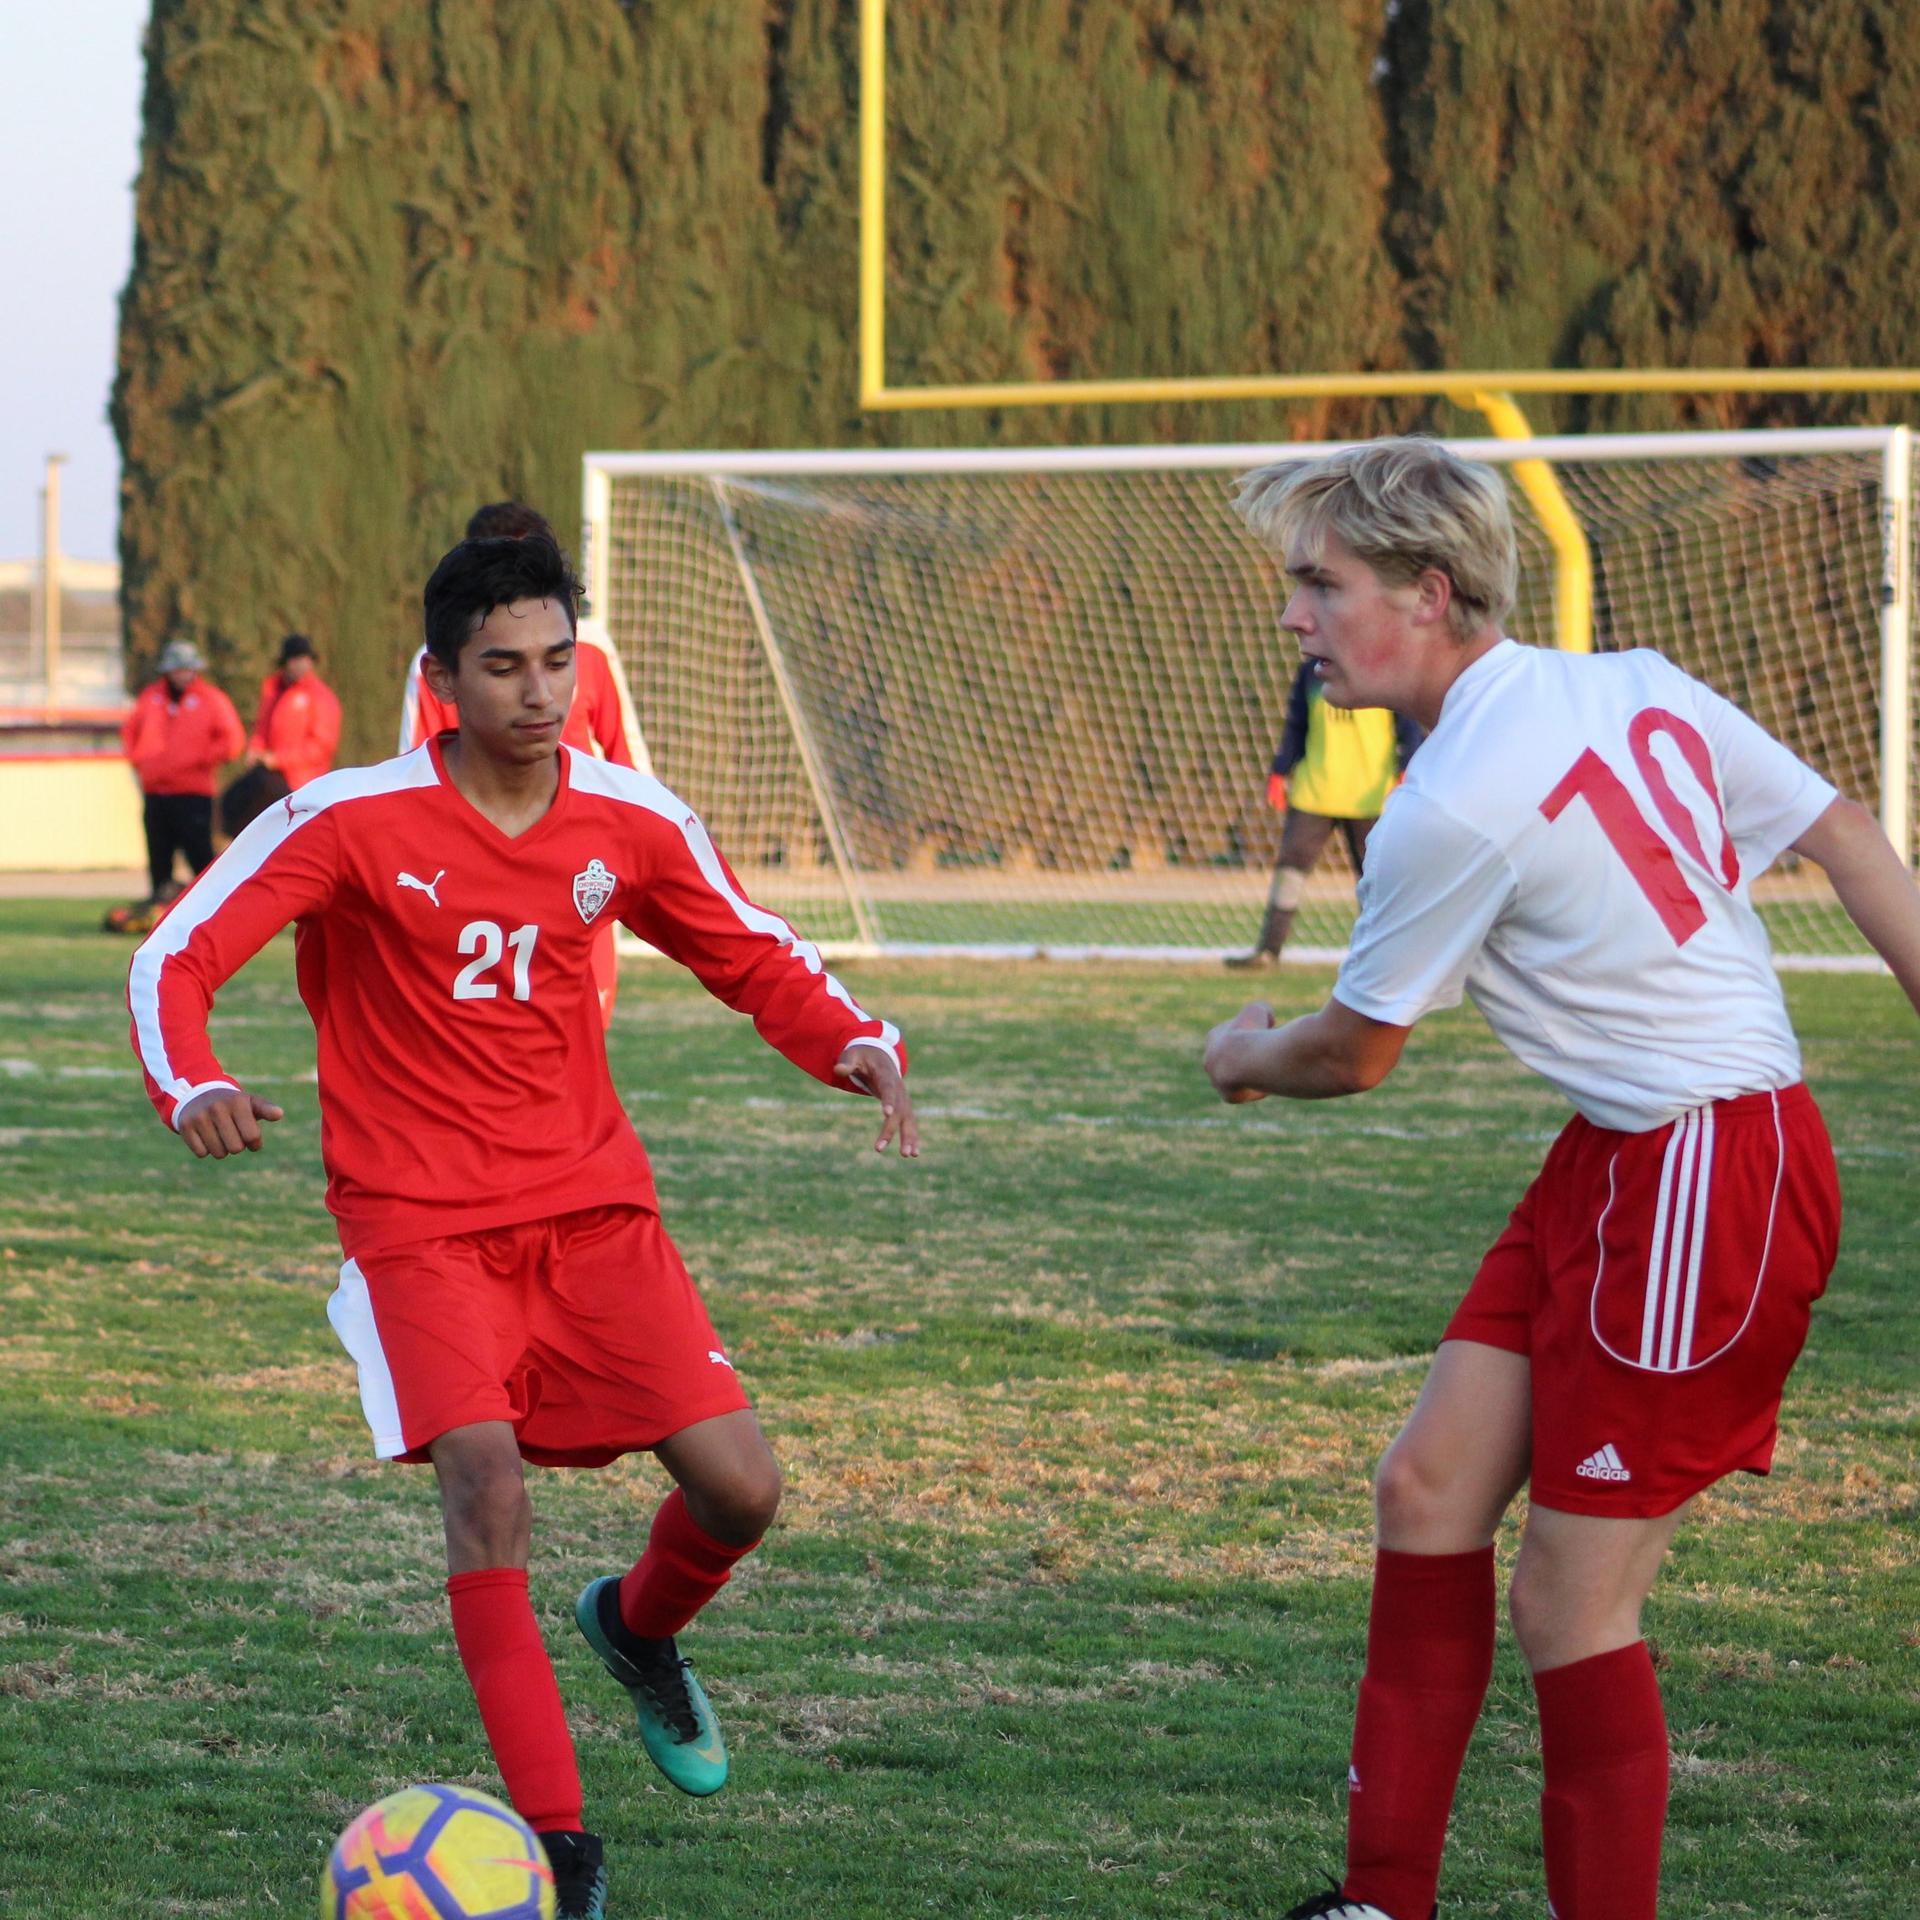 Brian Zamora with the ball